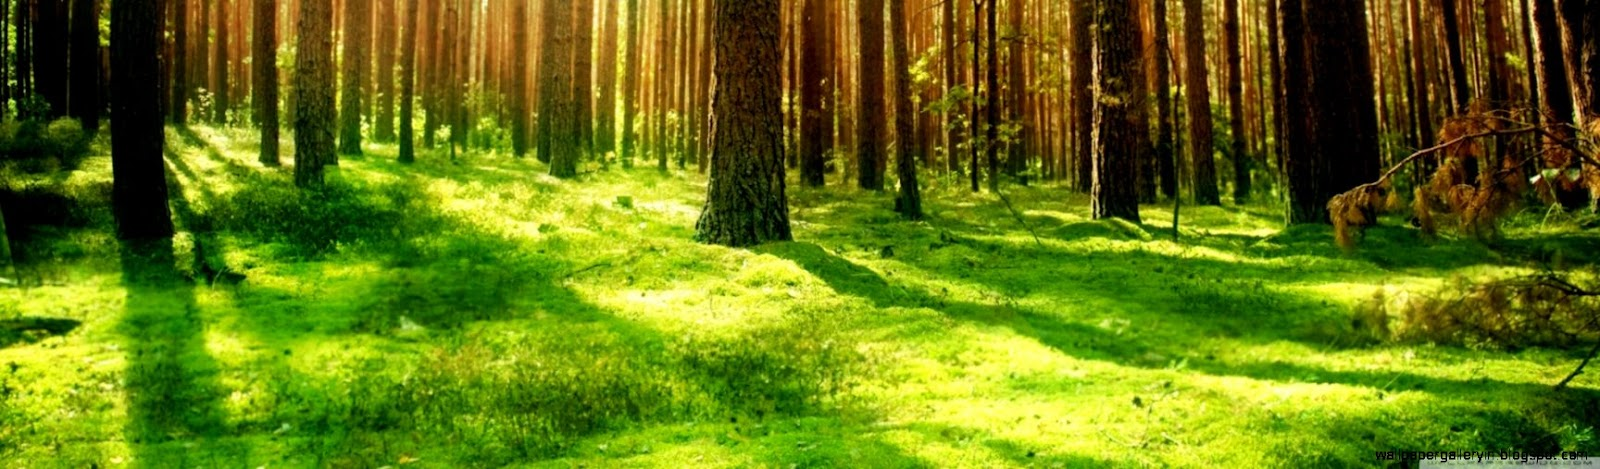 hd forest wallpaper widescreen full free download